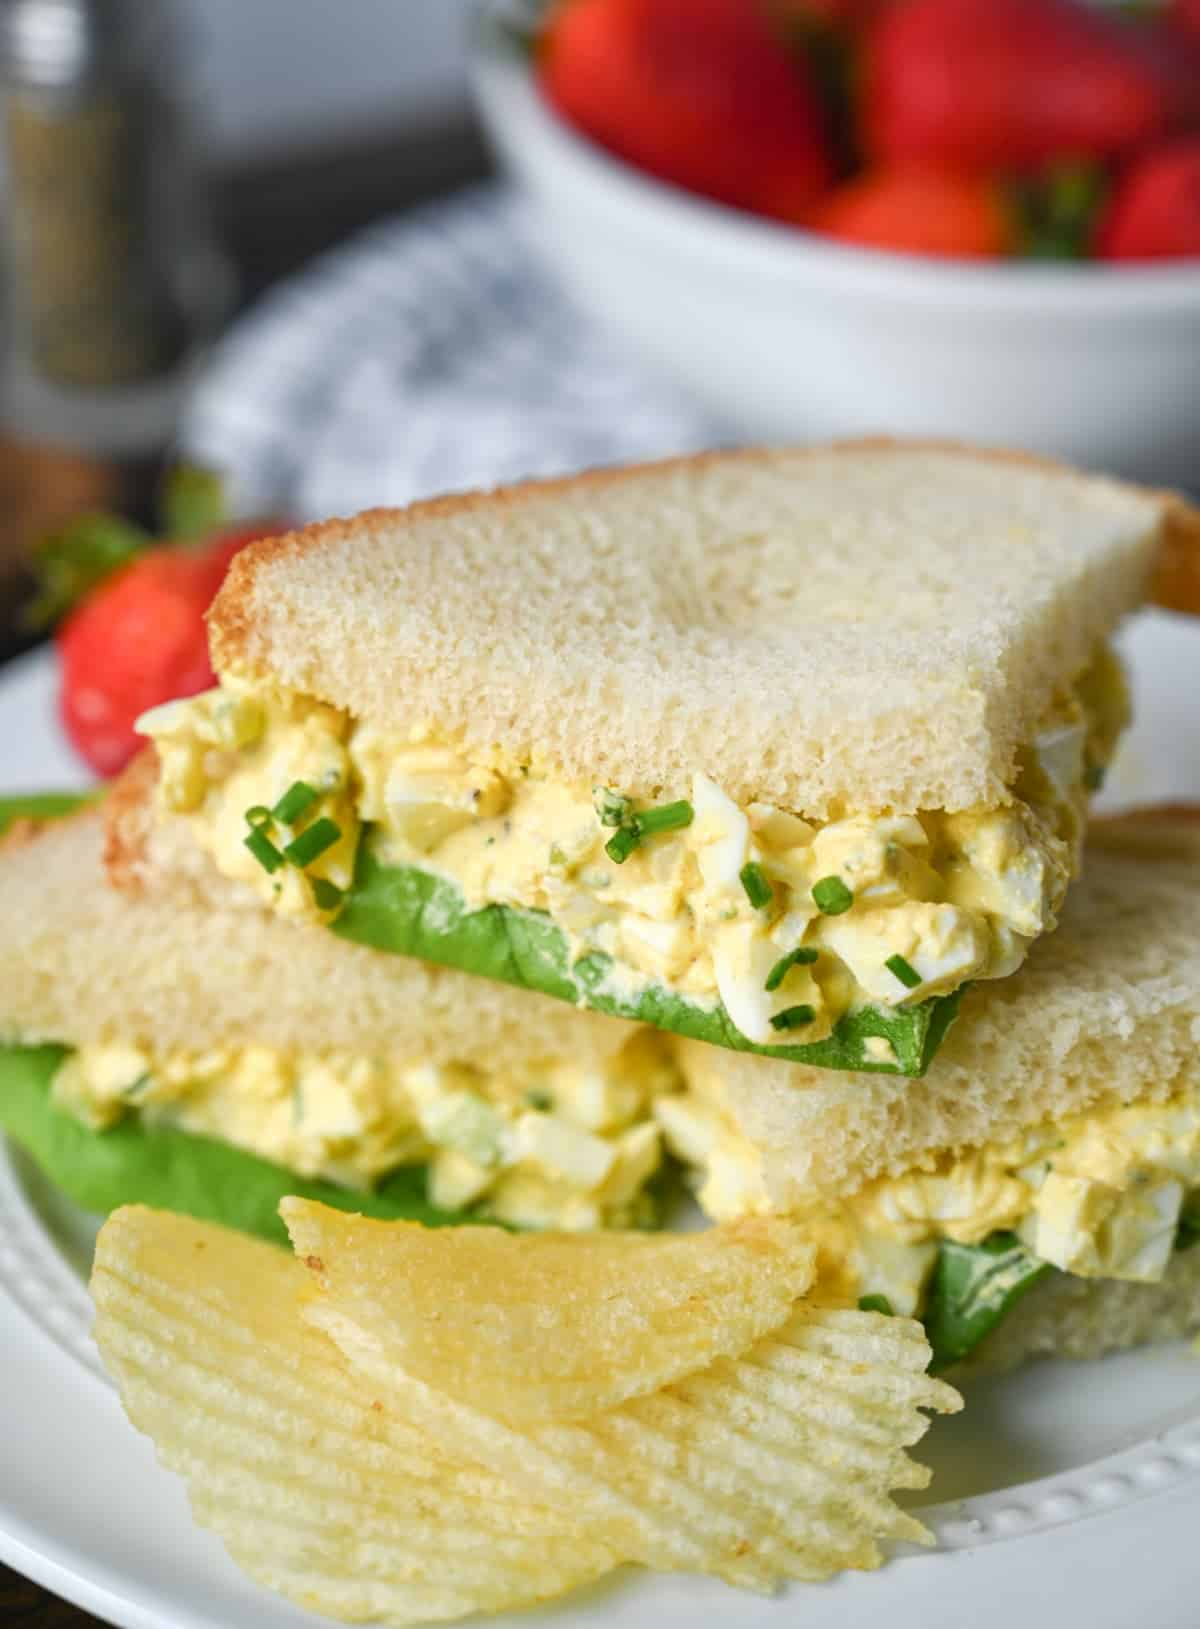 Small cut egg salad sandwiches stacked on top of each other.